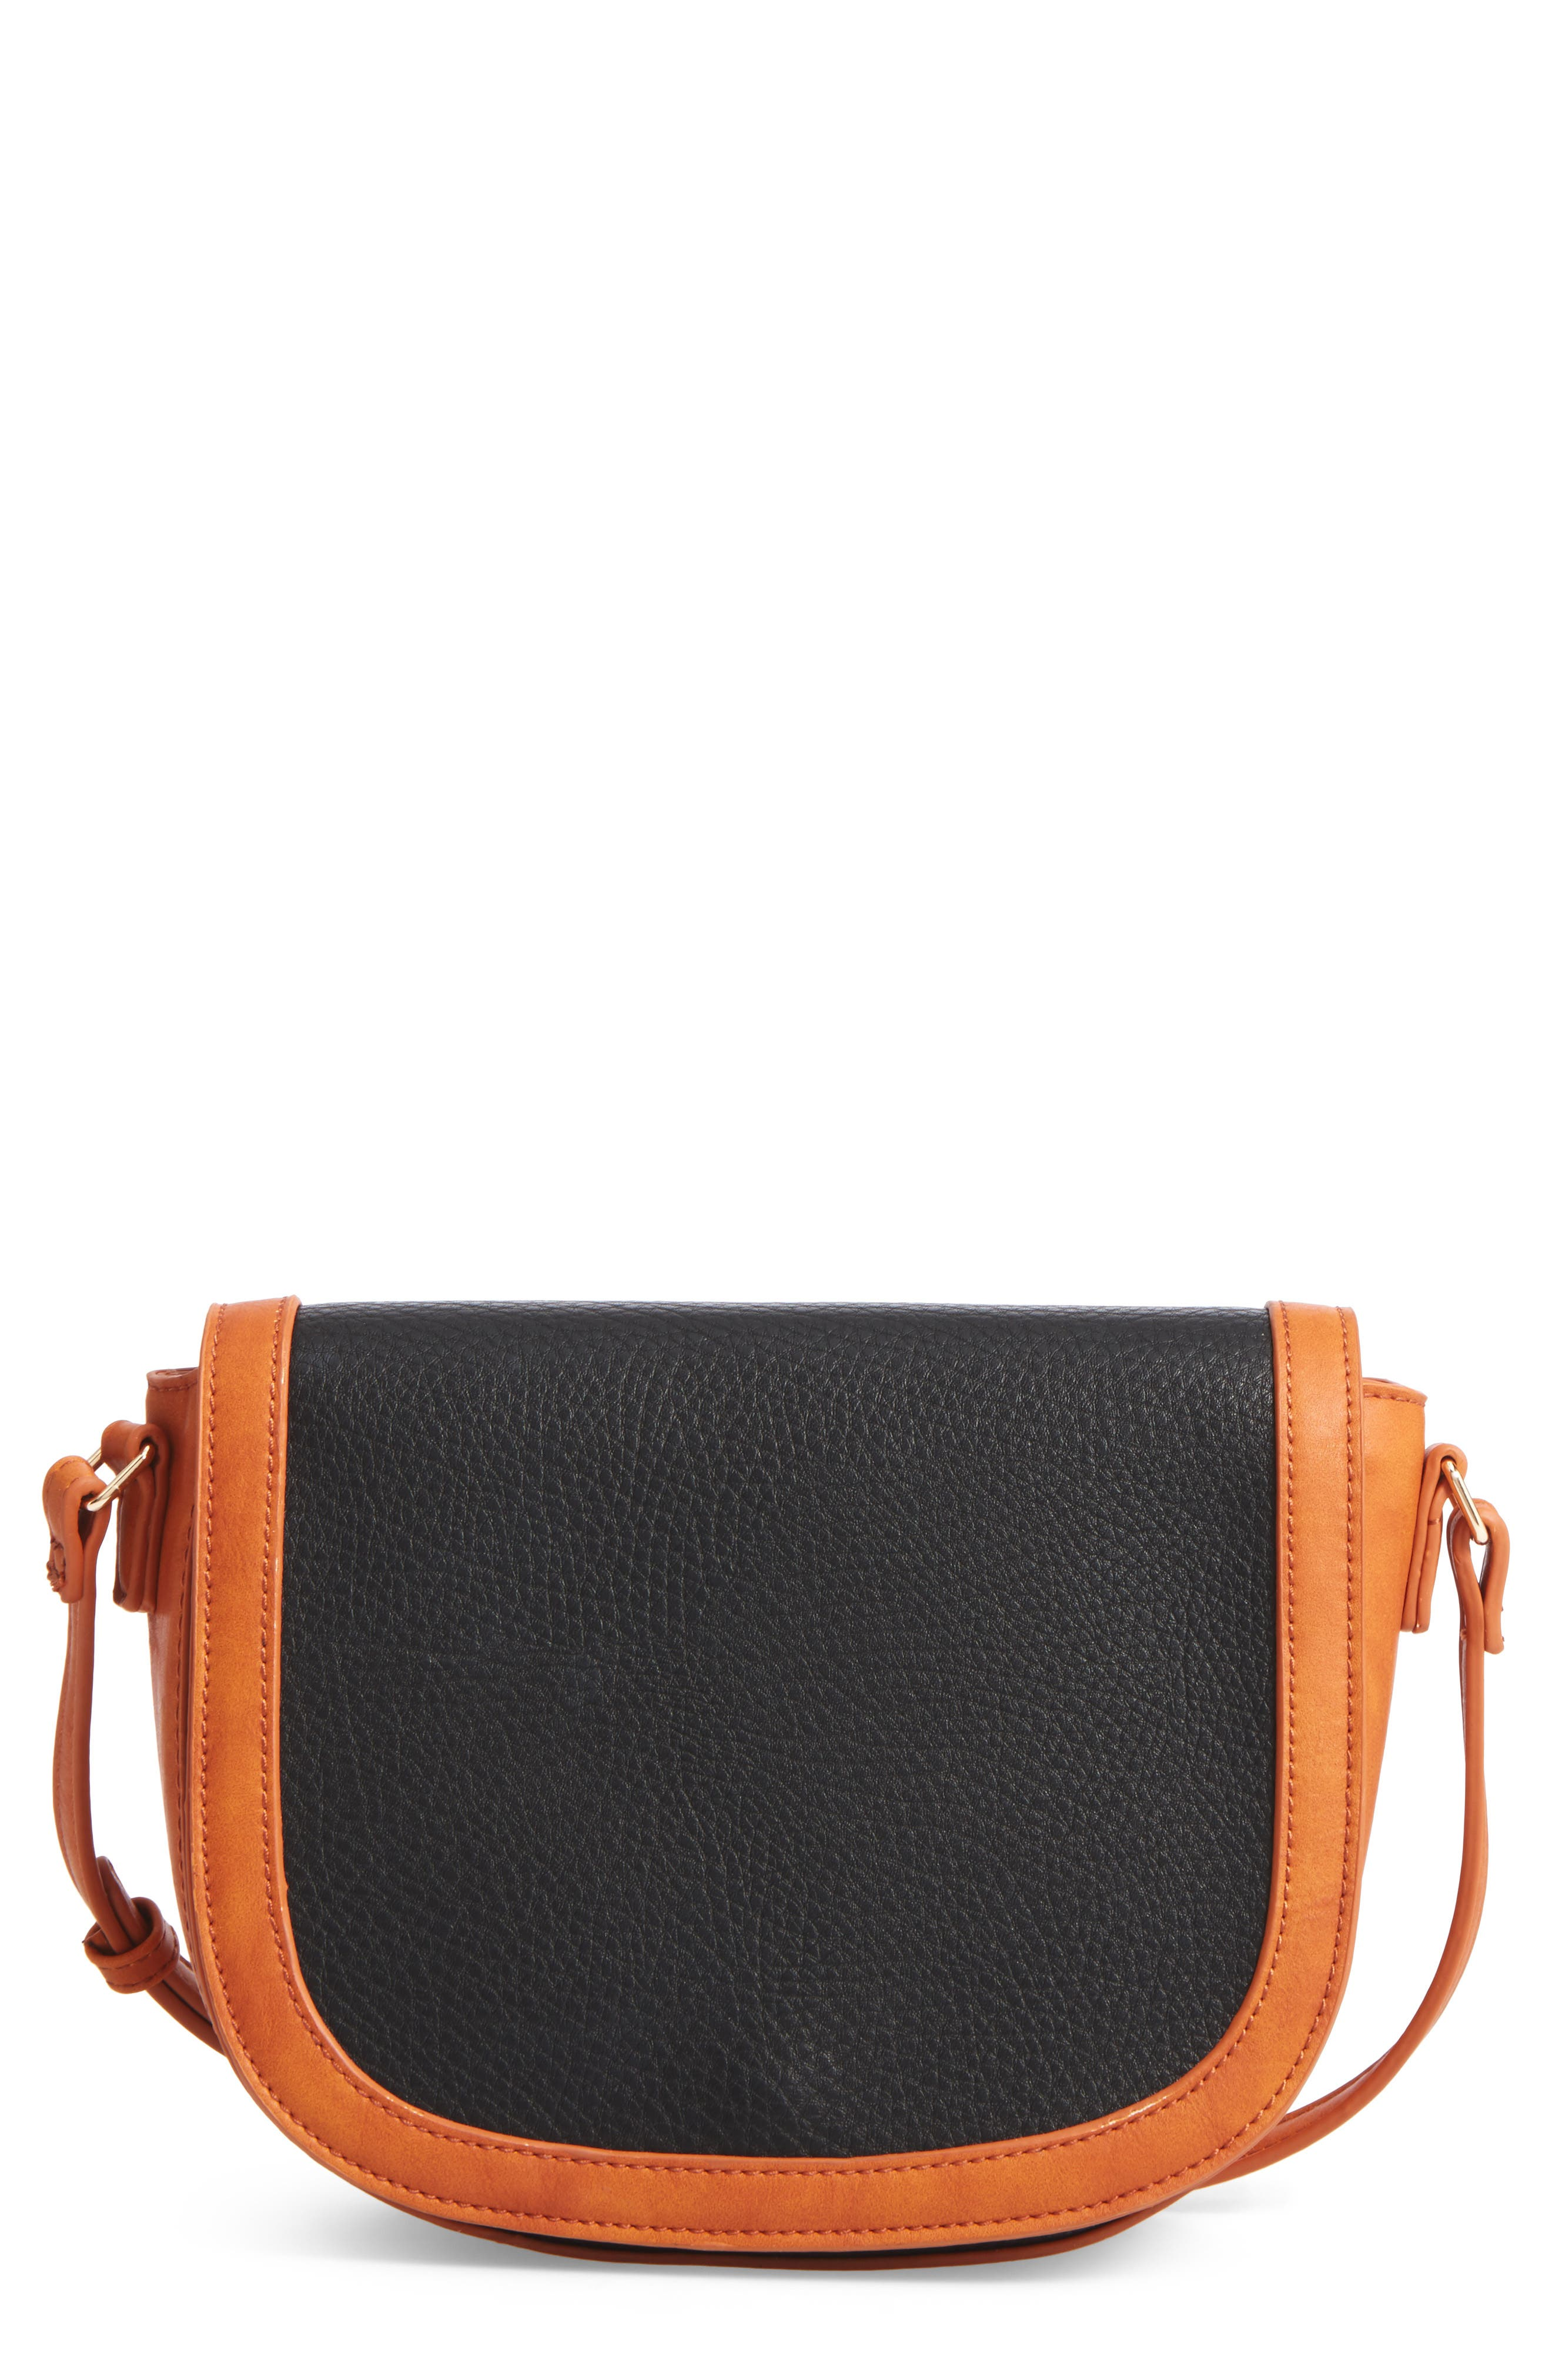 Sole Society Finnigan Faux Leather Crossbody Bag